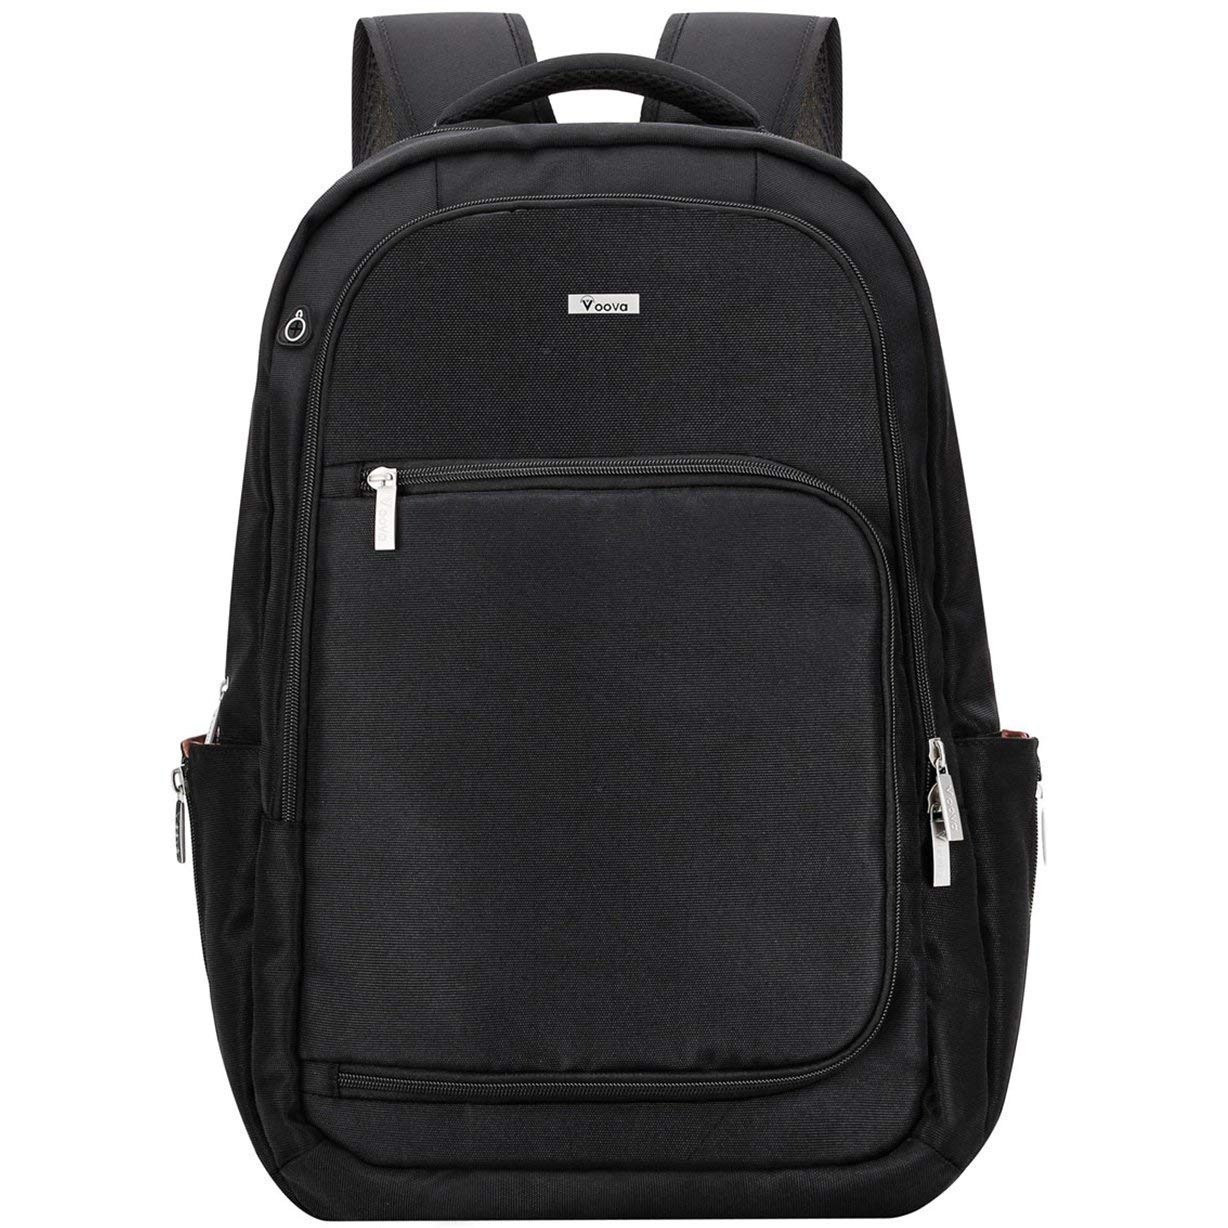 Voova Travel Laptop Backpack Multipurpose Anti-Theft Business Backpack Water Resistant College School Computer Bag for Women & Men Fits 15.6 Inch Laptop and Notebook -Black